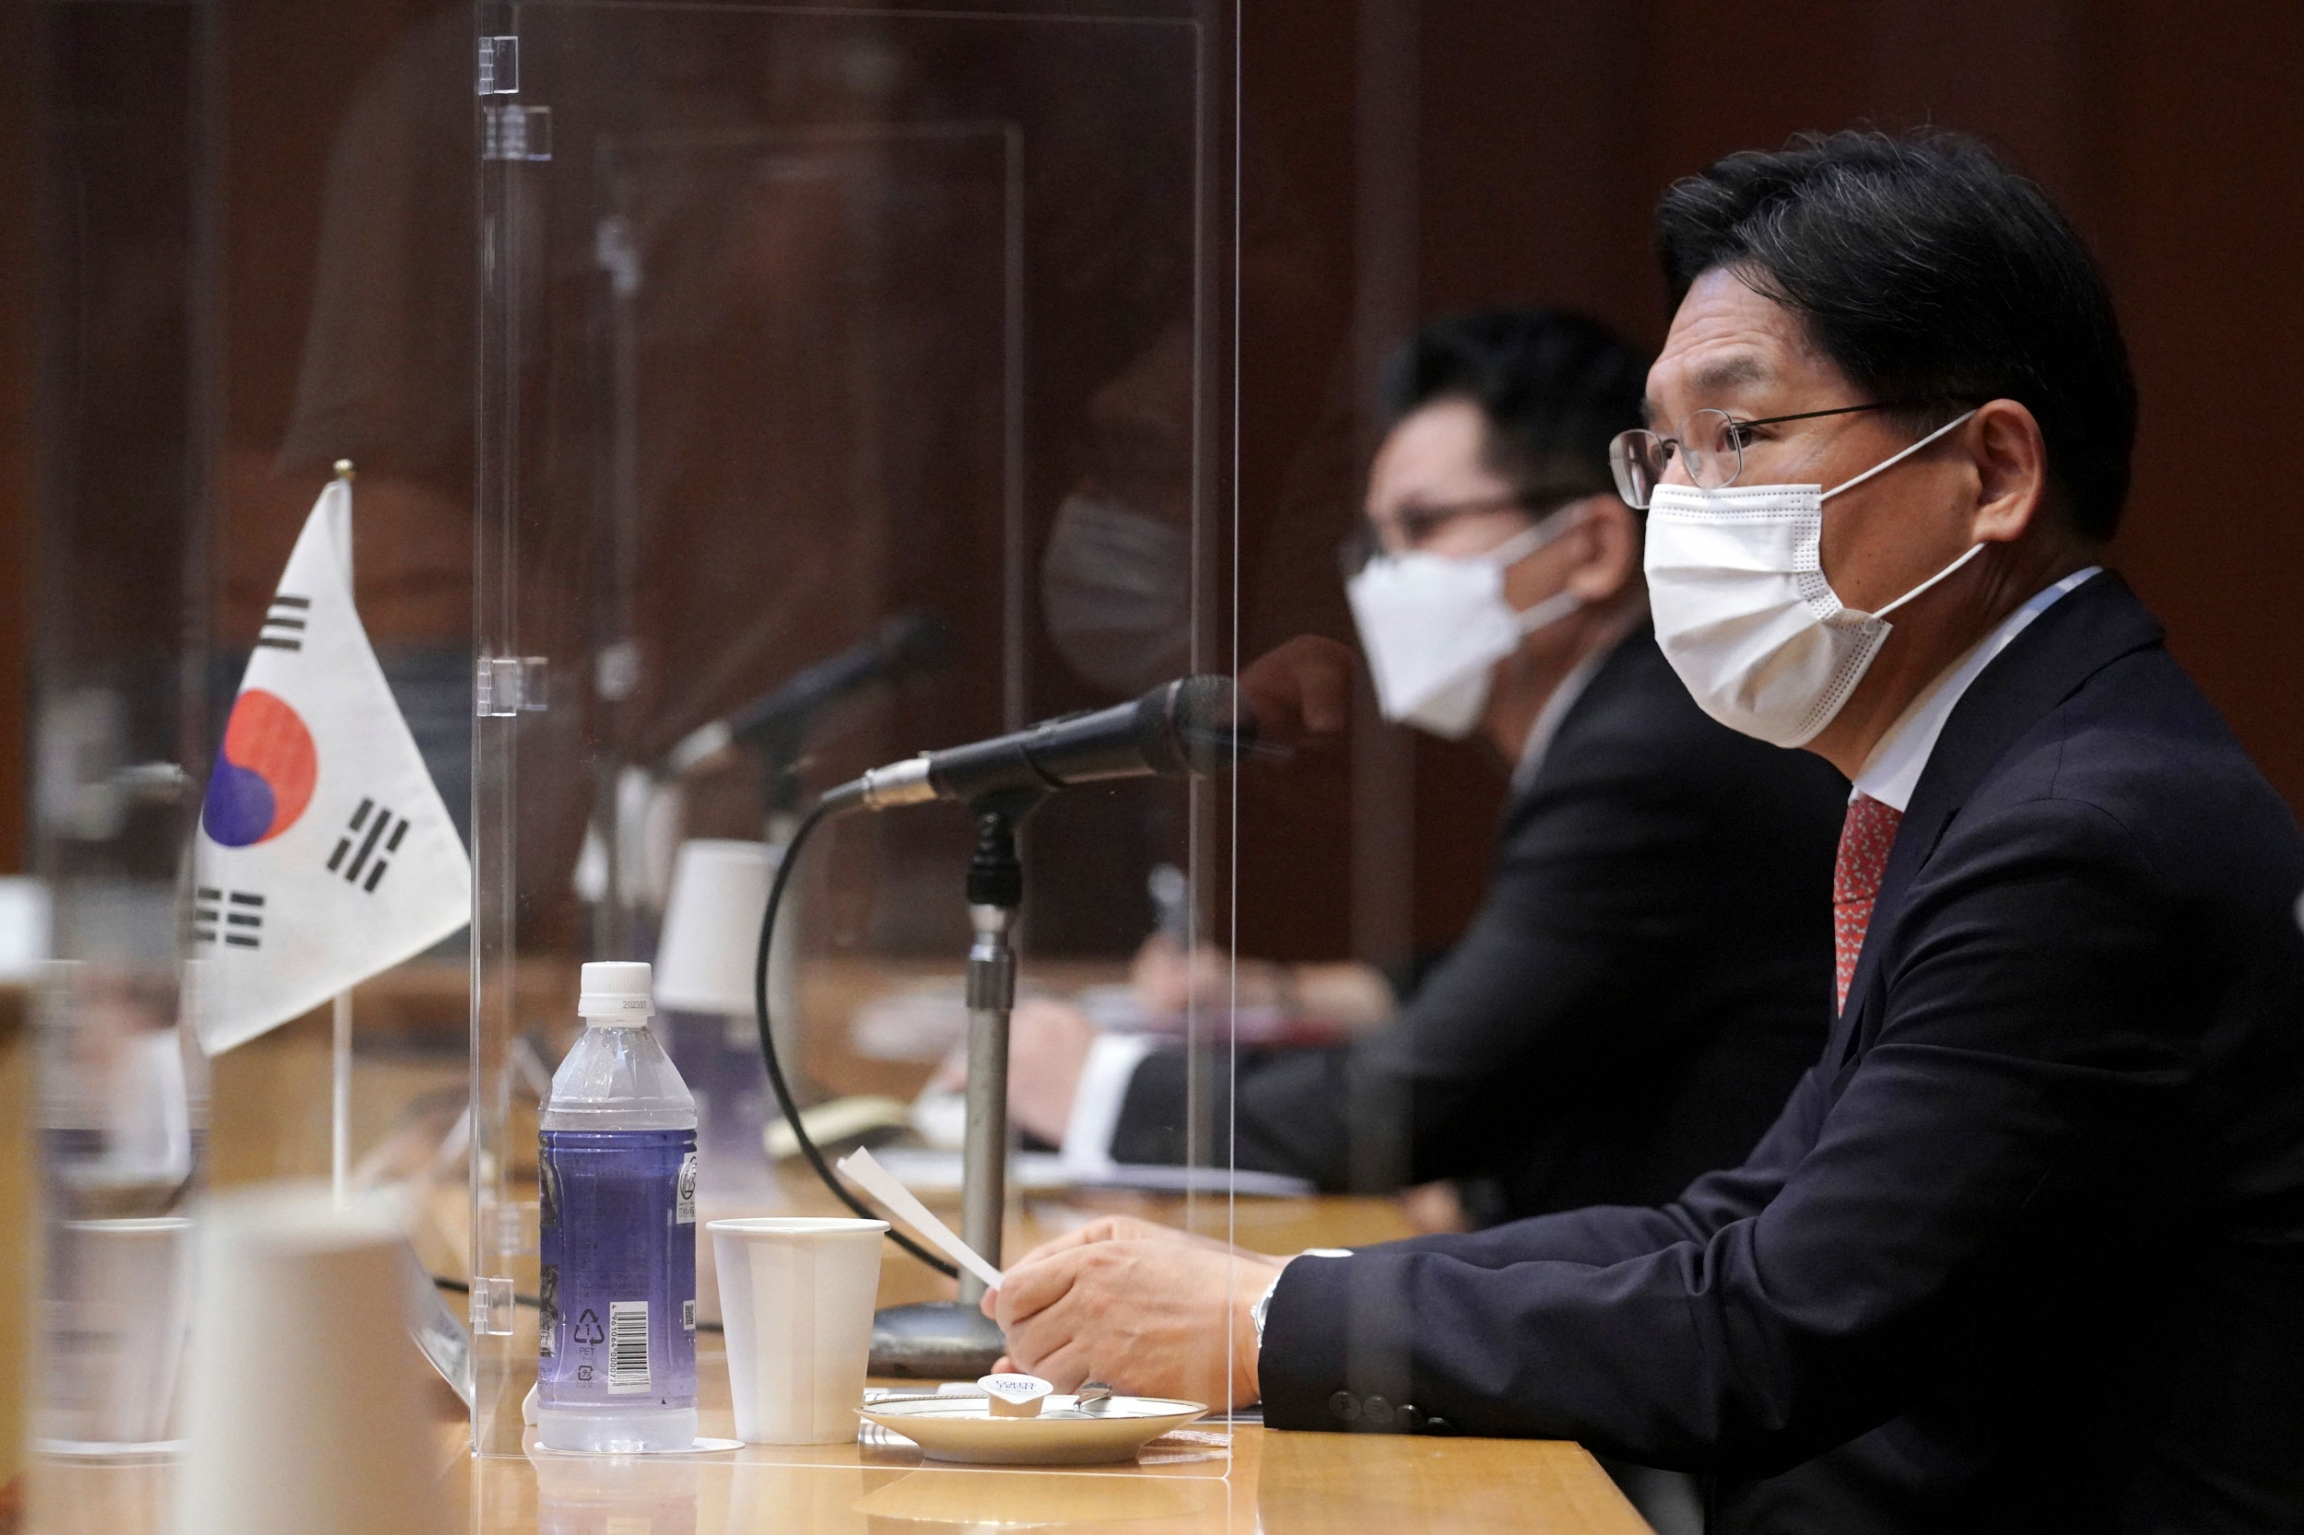 South Korea's Special Representative for Korean Peninsula Peace and Security Affairs Noh Kyu-duk, right, speaks during a trilateral meeting with Japanese Foreign Ministry'sDirector-General of the Asian and Oceanian Affairs Bureau Takehiro Funakoshi, and